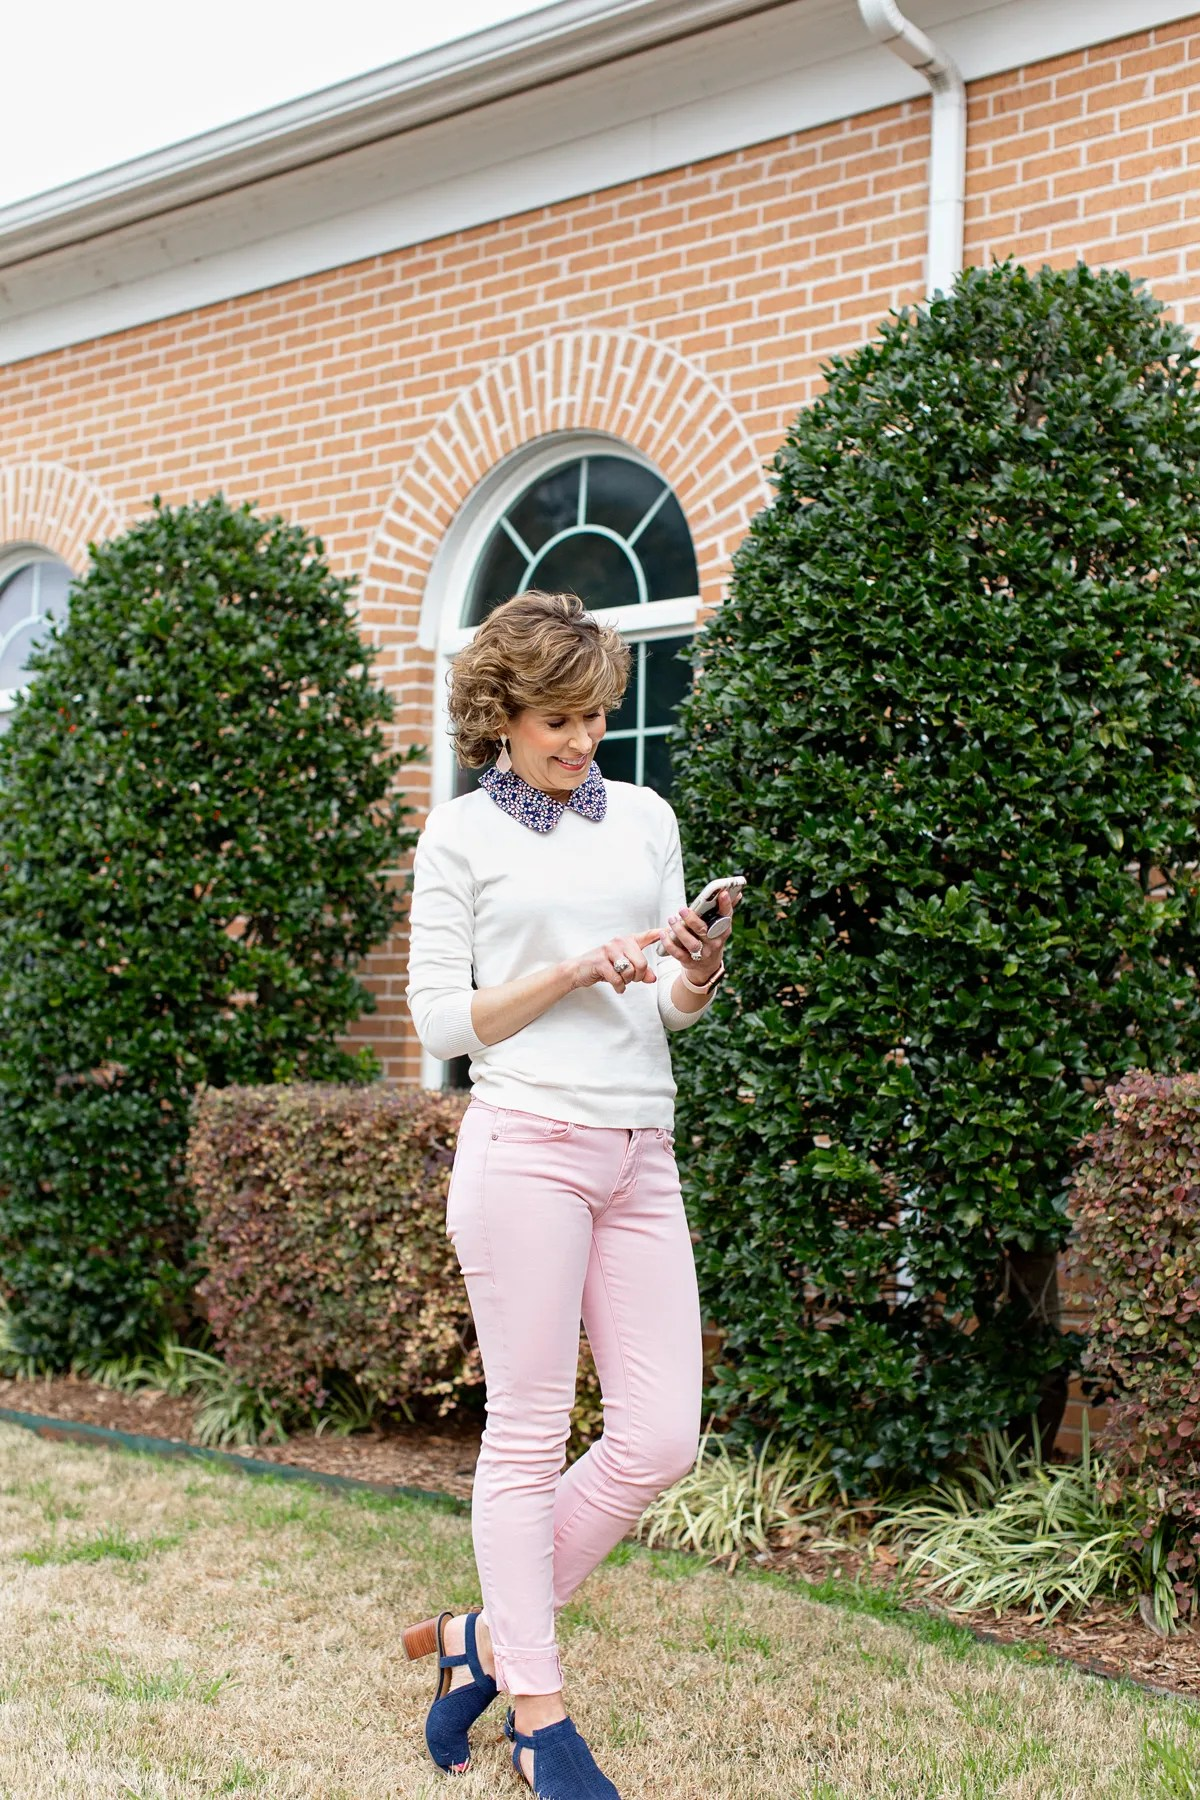 woman in white top and pink pants looking at phone